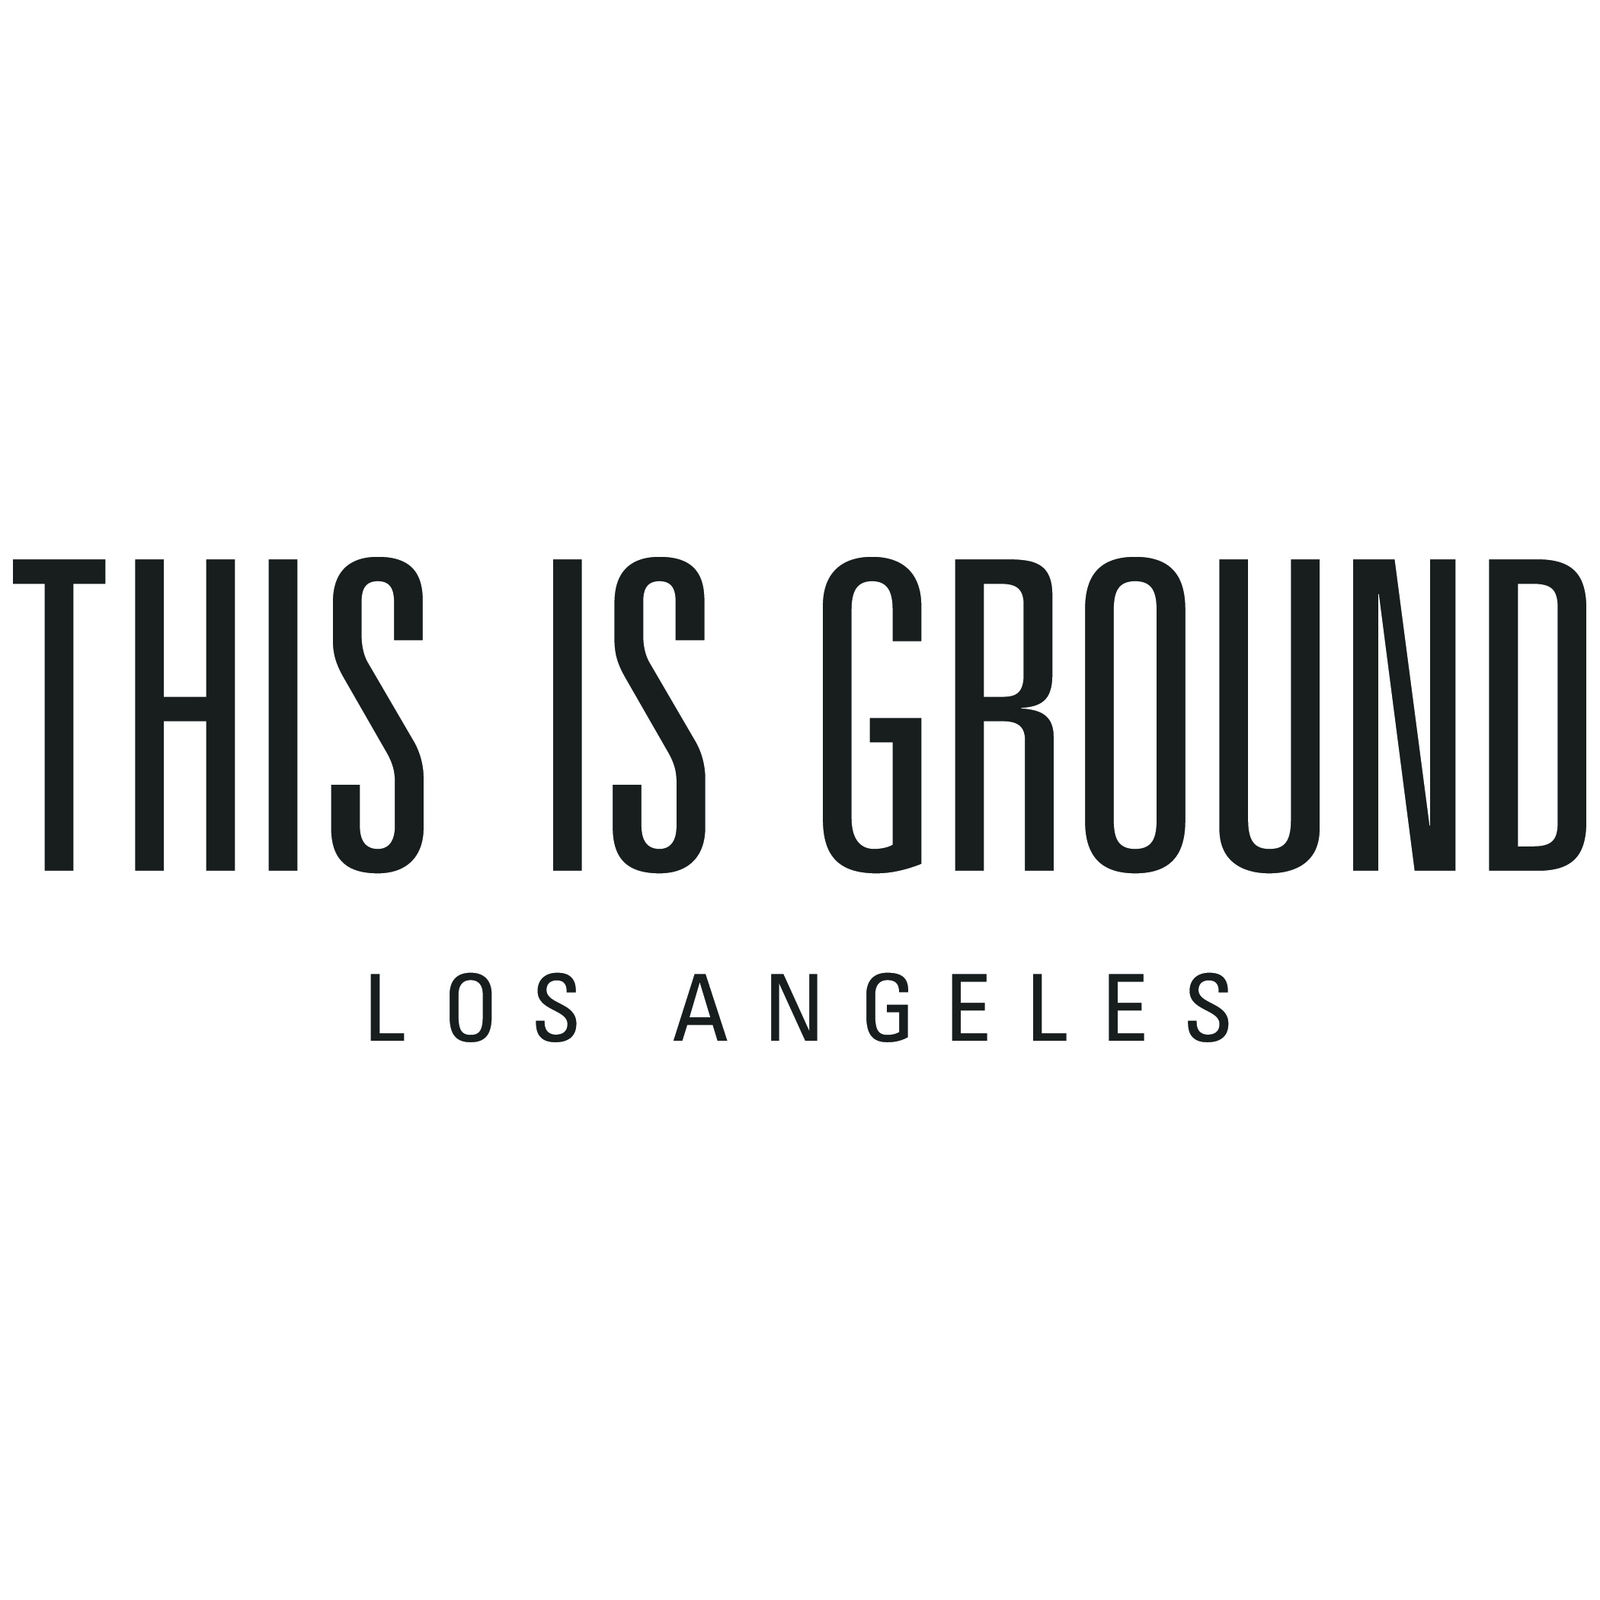 THIS IS GROUND